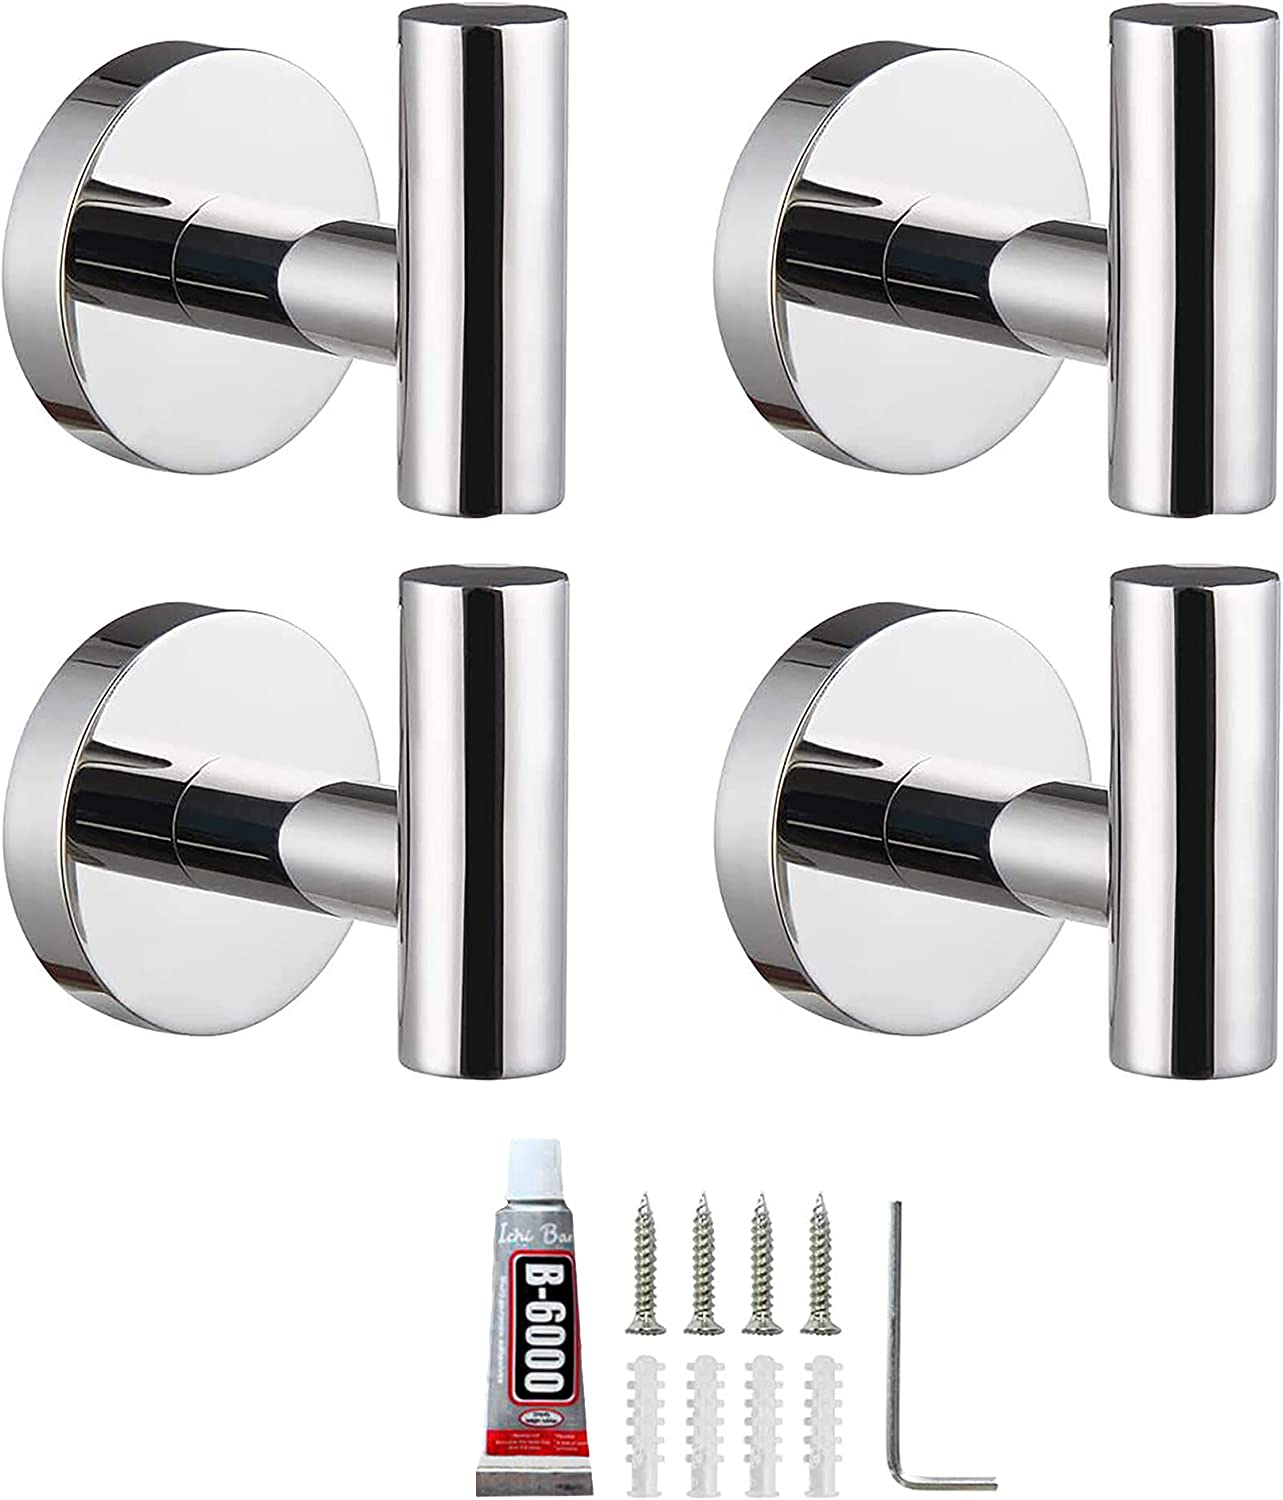 4 Pack Towel Hooks Silver SUS304 Stainless Steel Polishied Modern Towel Hook Coat Robe Clothes Hooks Hanger for Bathroom Wall Mounted Kitchen Hotel Outdoor Showers Living Room Bedroom Holder